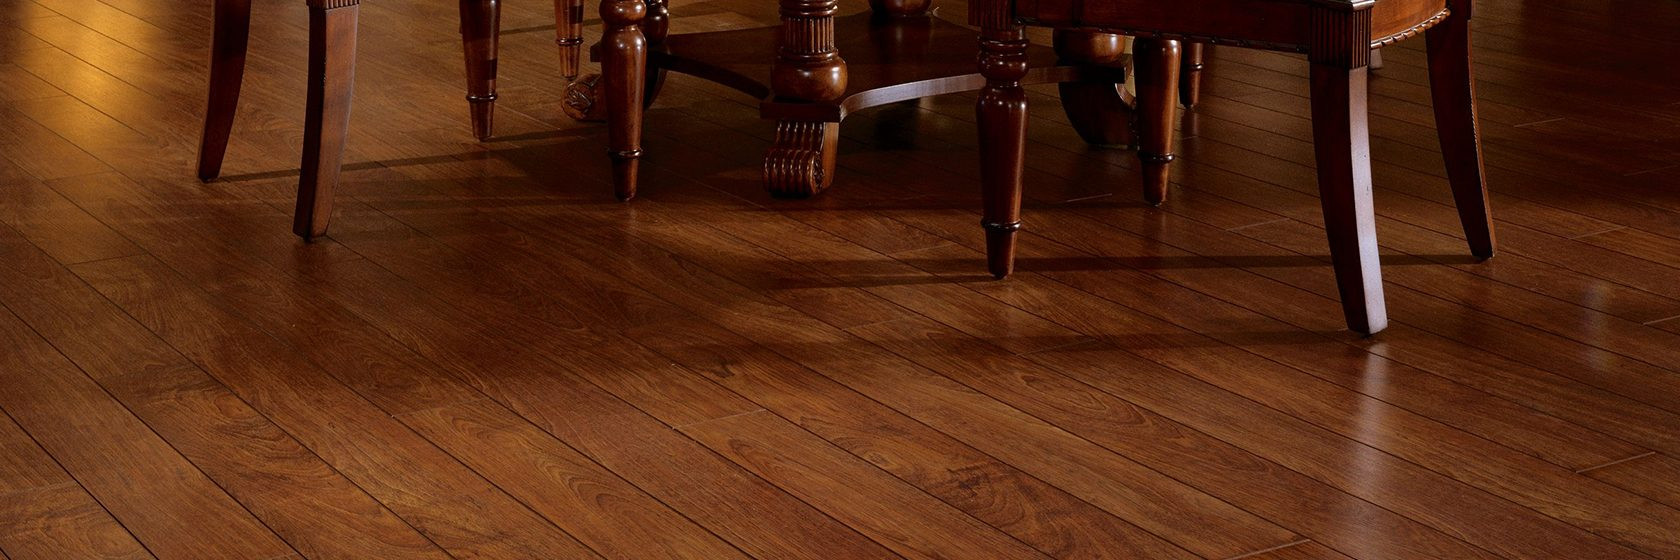 labor cost to install hardwood floors per square foot of laminate exotic olive ash l8708 pertaining to hero l 1680 560